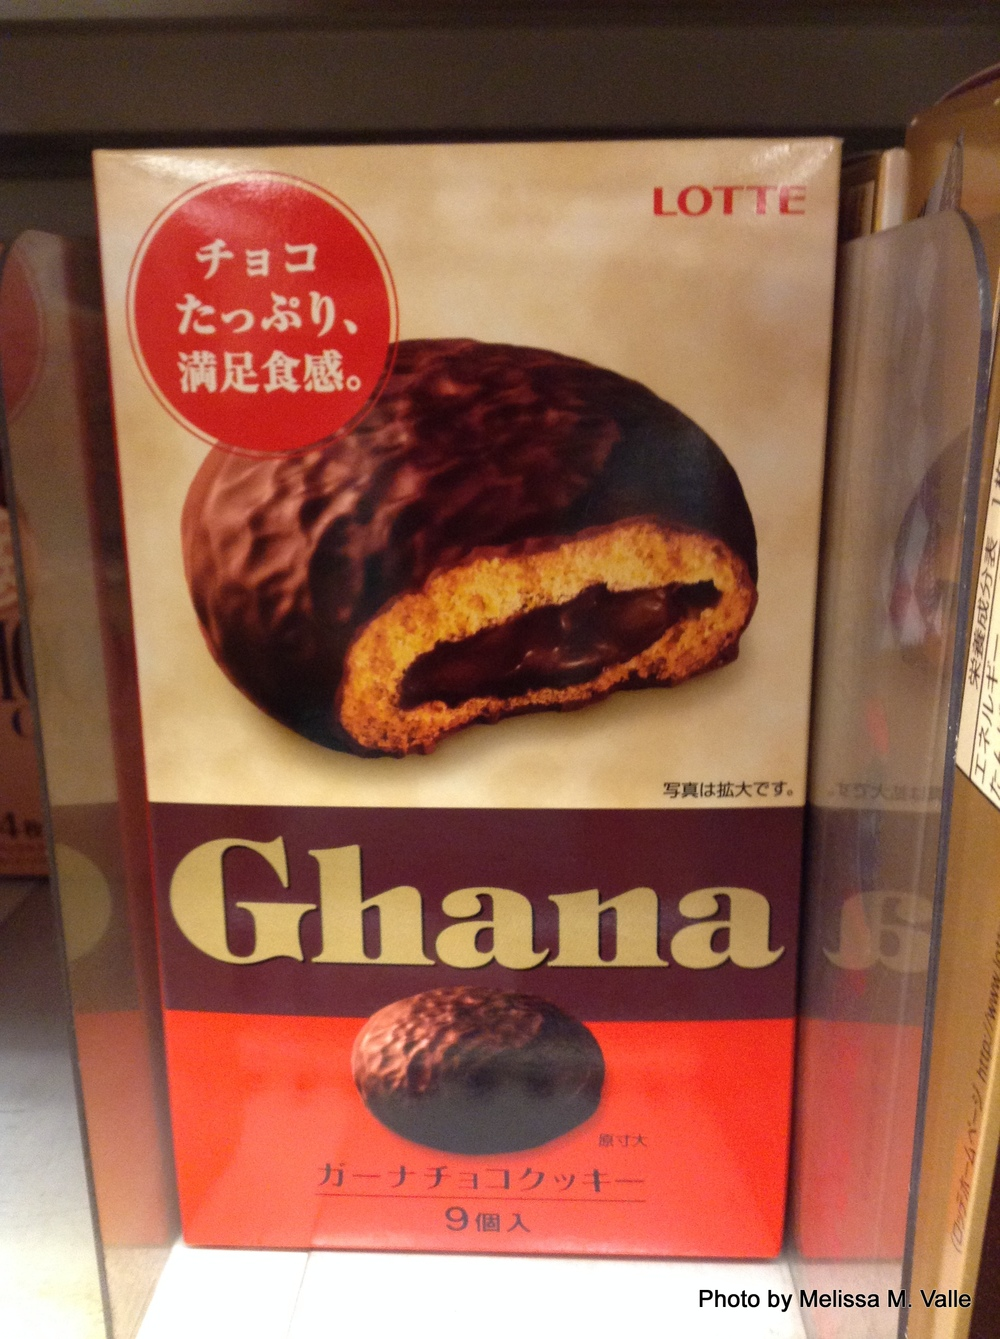 GHANA chocolate sans cartoons of people from Africa. Kudos.